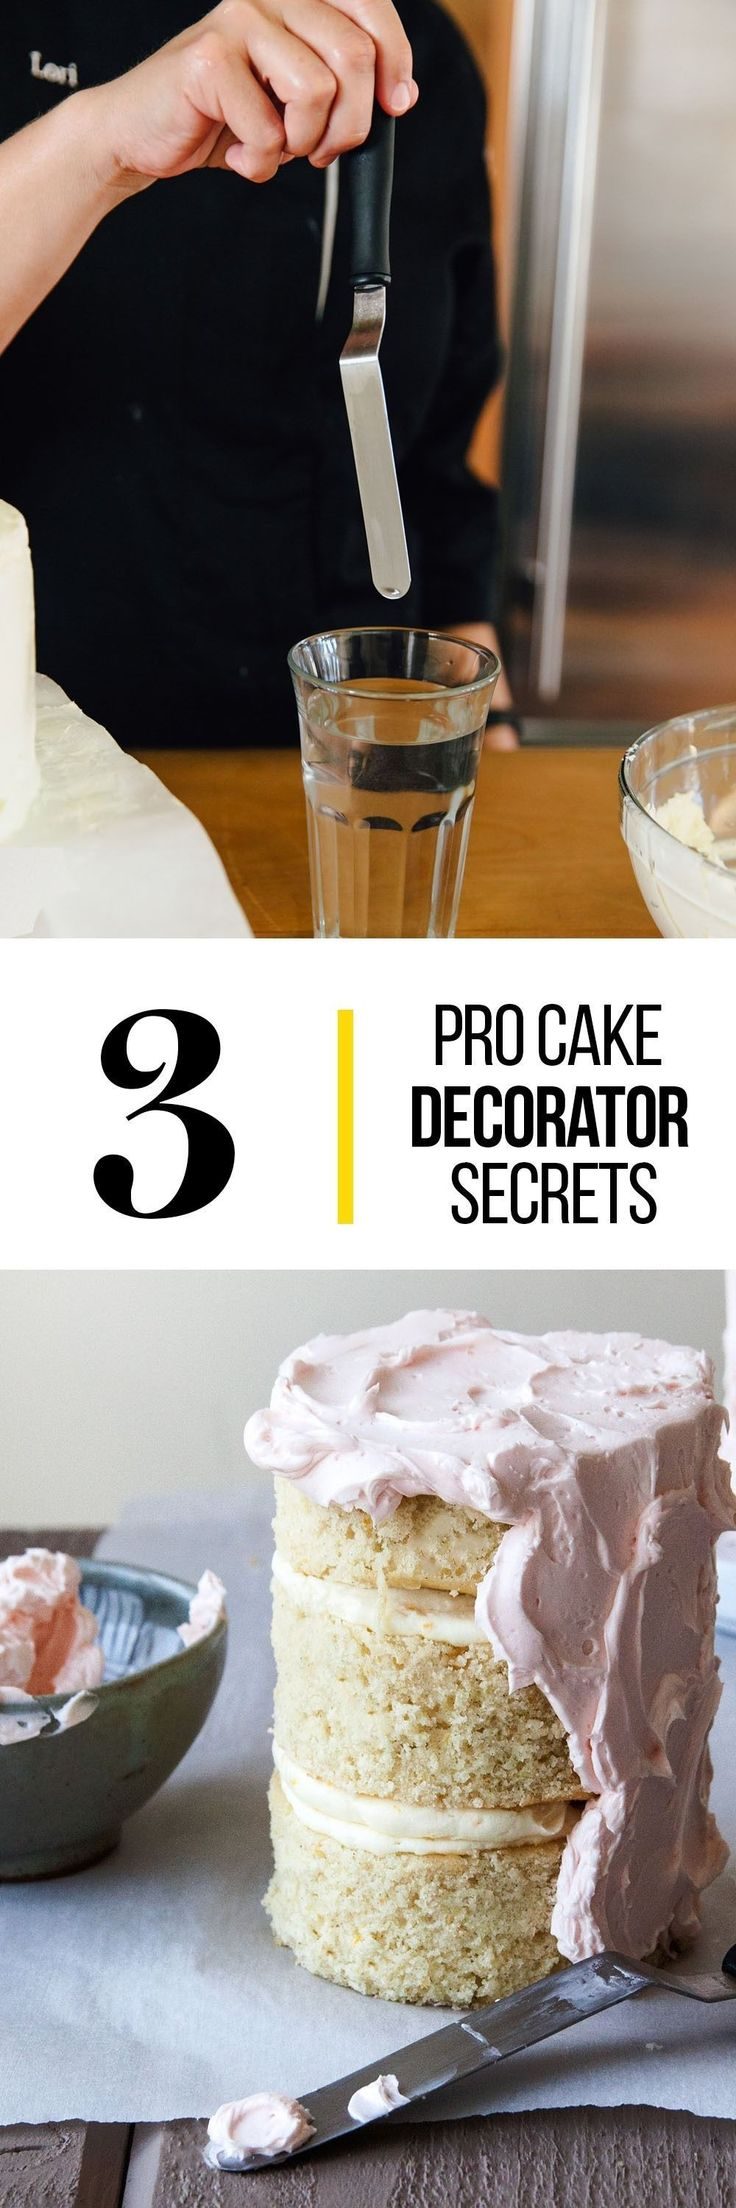 3 Things the Pros Do for a Better Frosted Cake. Want to learn how to perfectly frost a cake for the next birthday party you're baking a cake for? Read these tips and tricks! #cakedecoratingtutorials #dyicakedecorating